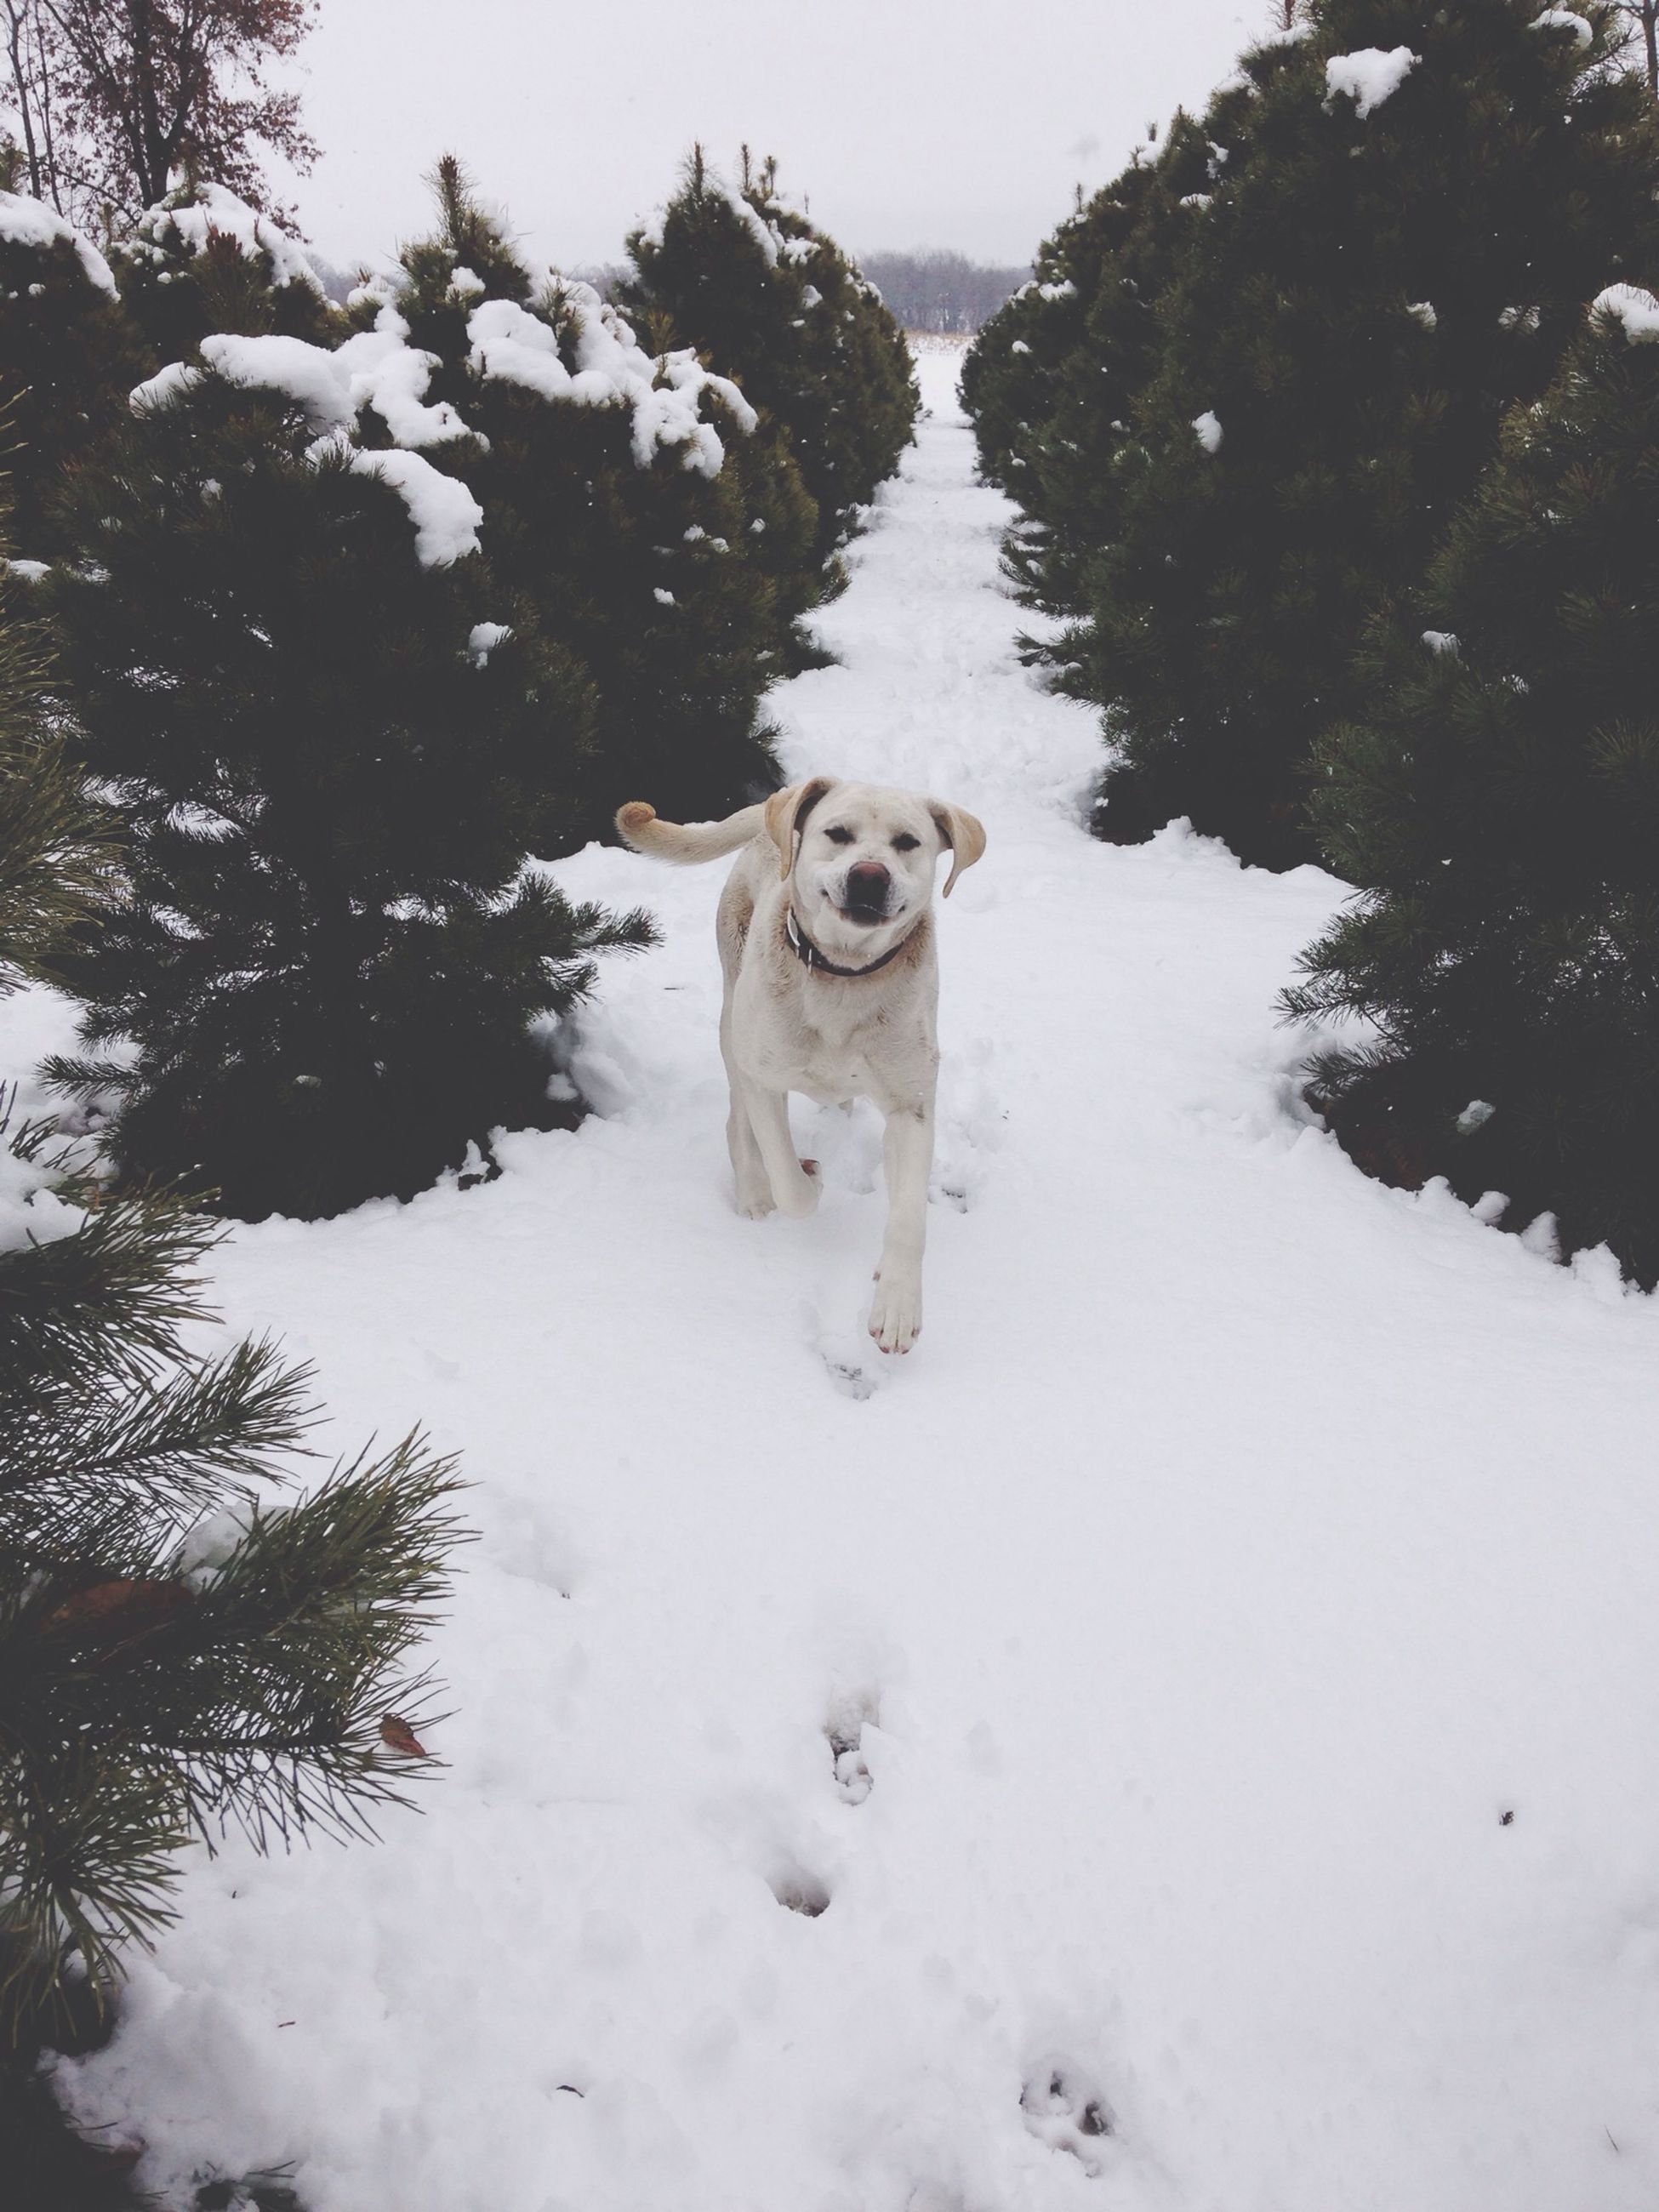 domestic animals, animal themes, mammal, pets, one animal, dog, snow, winter, cold temperature, white color, tree, looking at camera, field, portrait, season, weather, vertebrate, pet collar, nature, animal